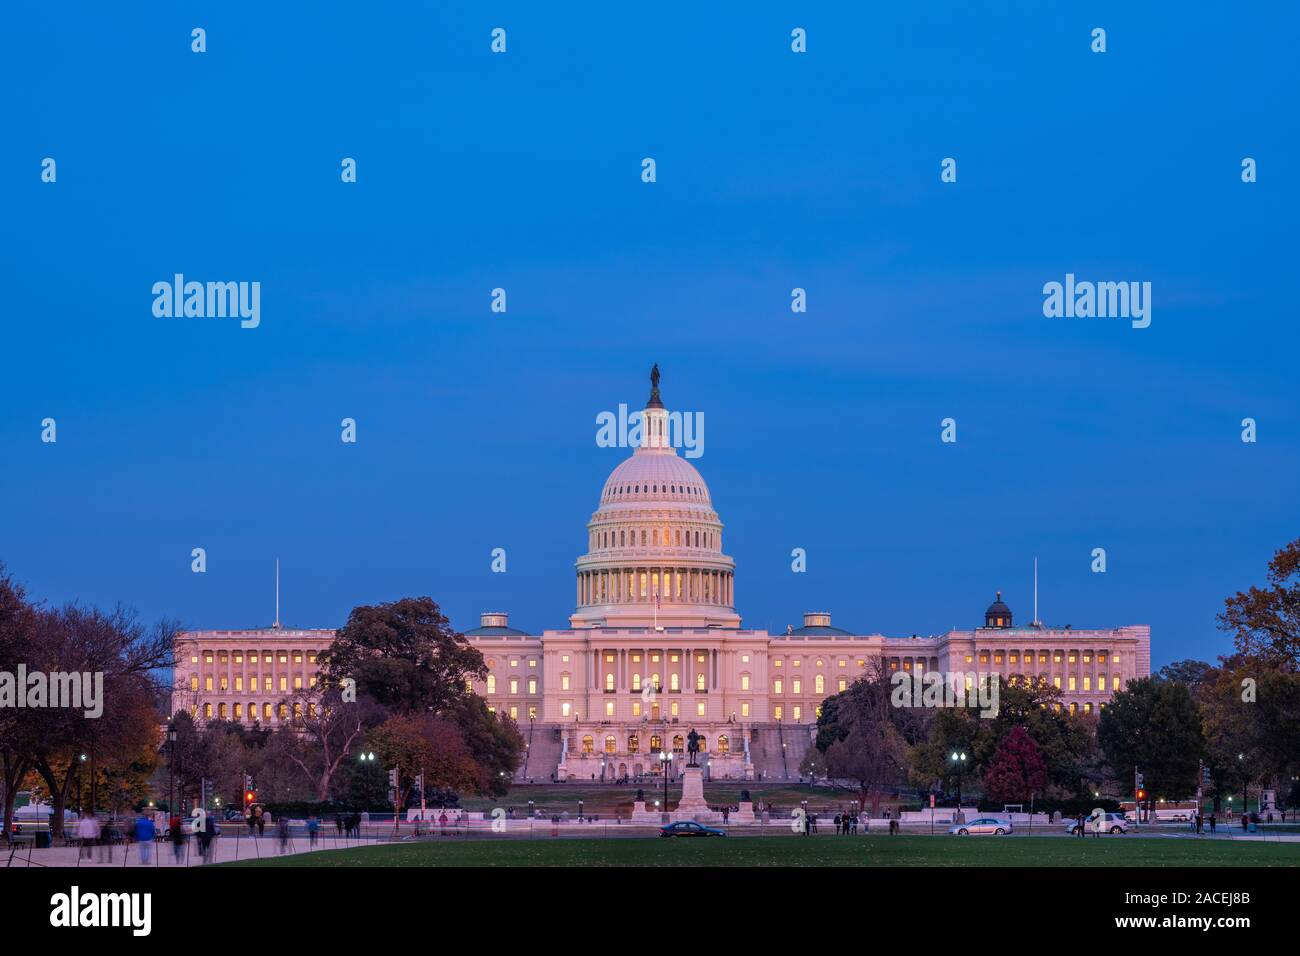 Exterior of the United States Capitol Building Stock Photo